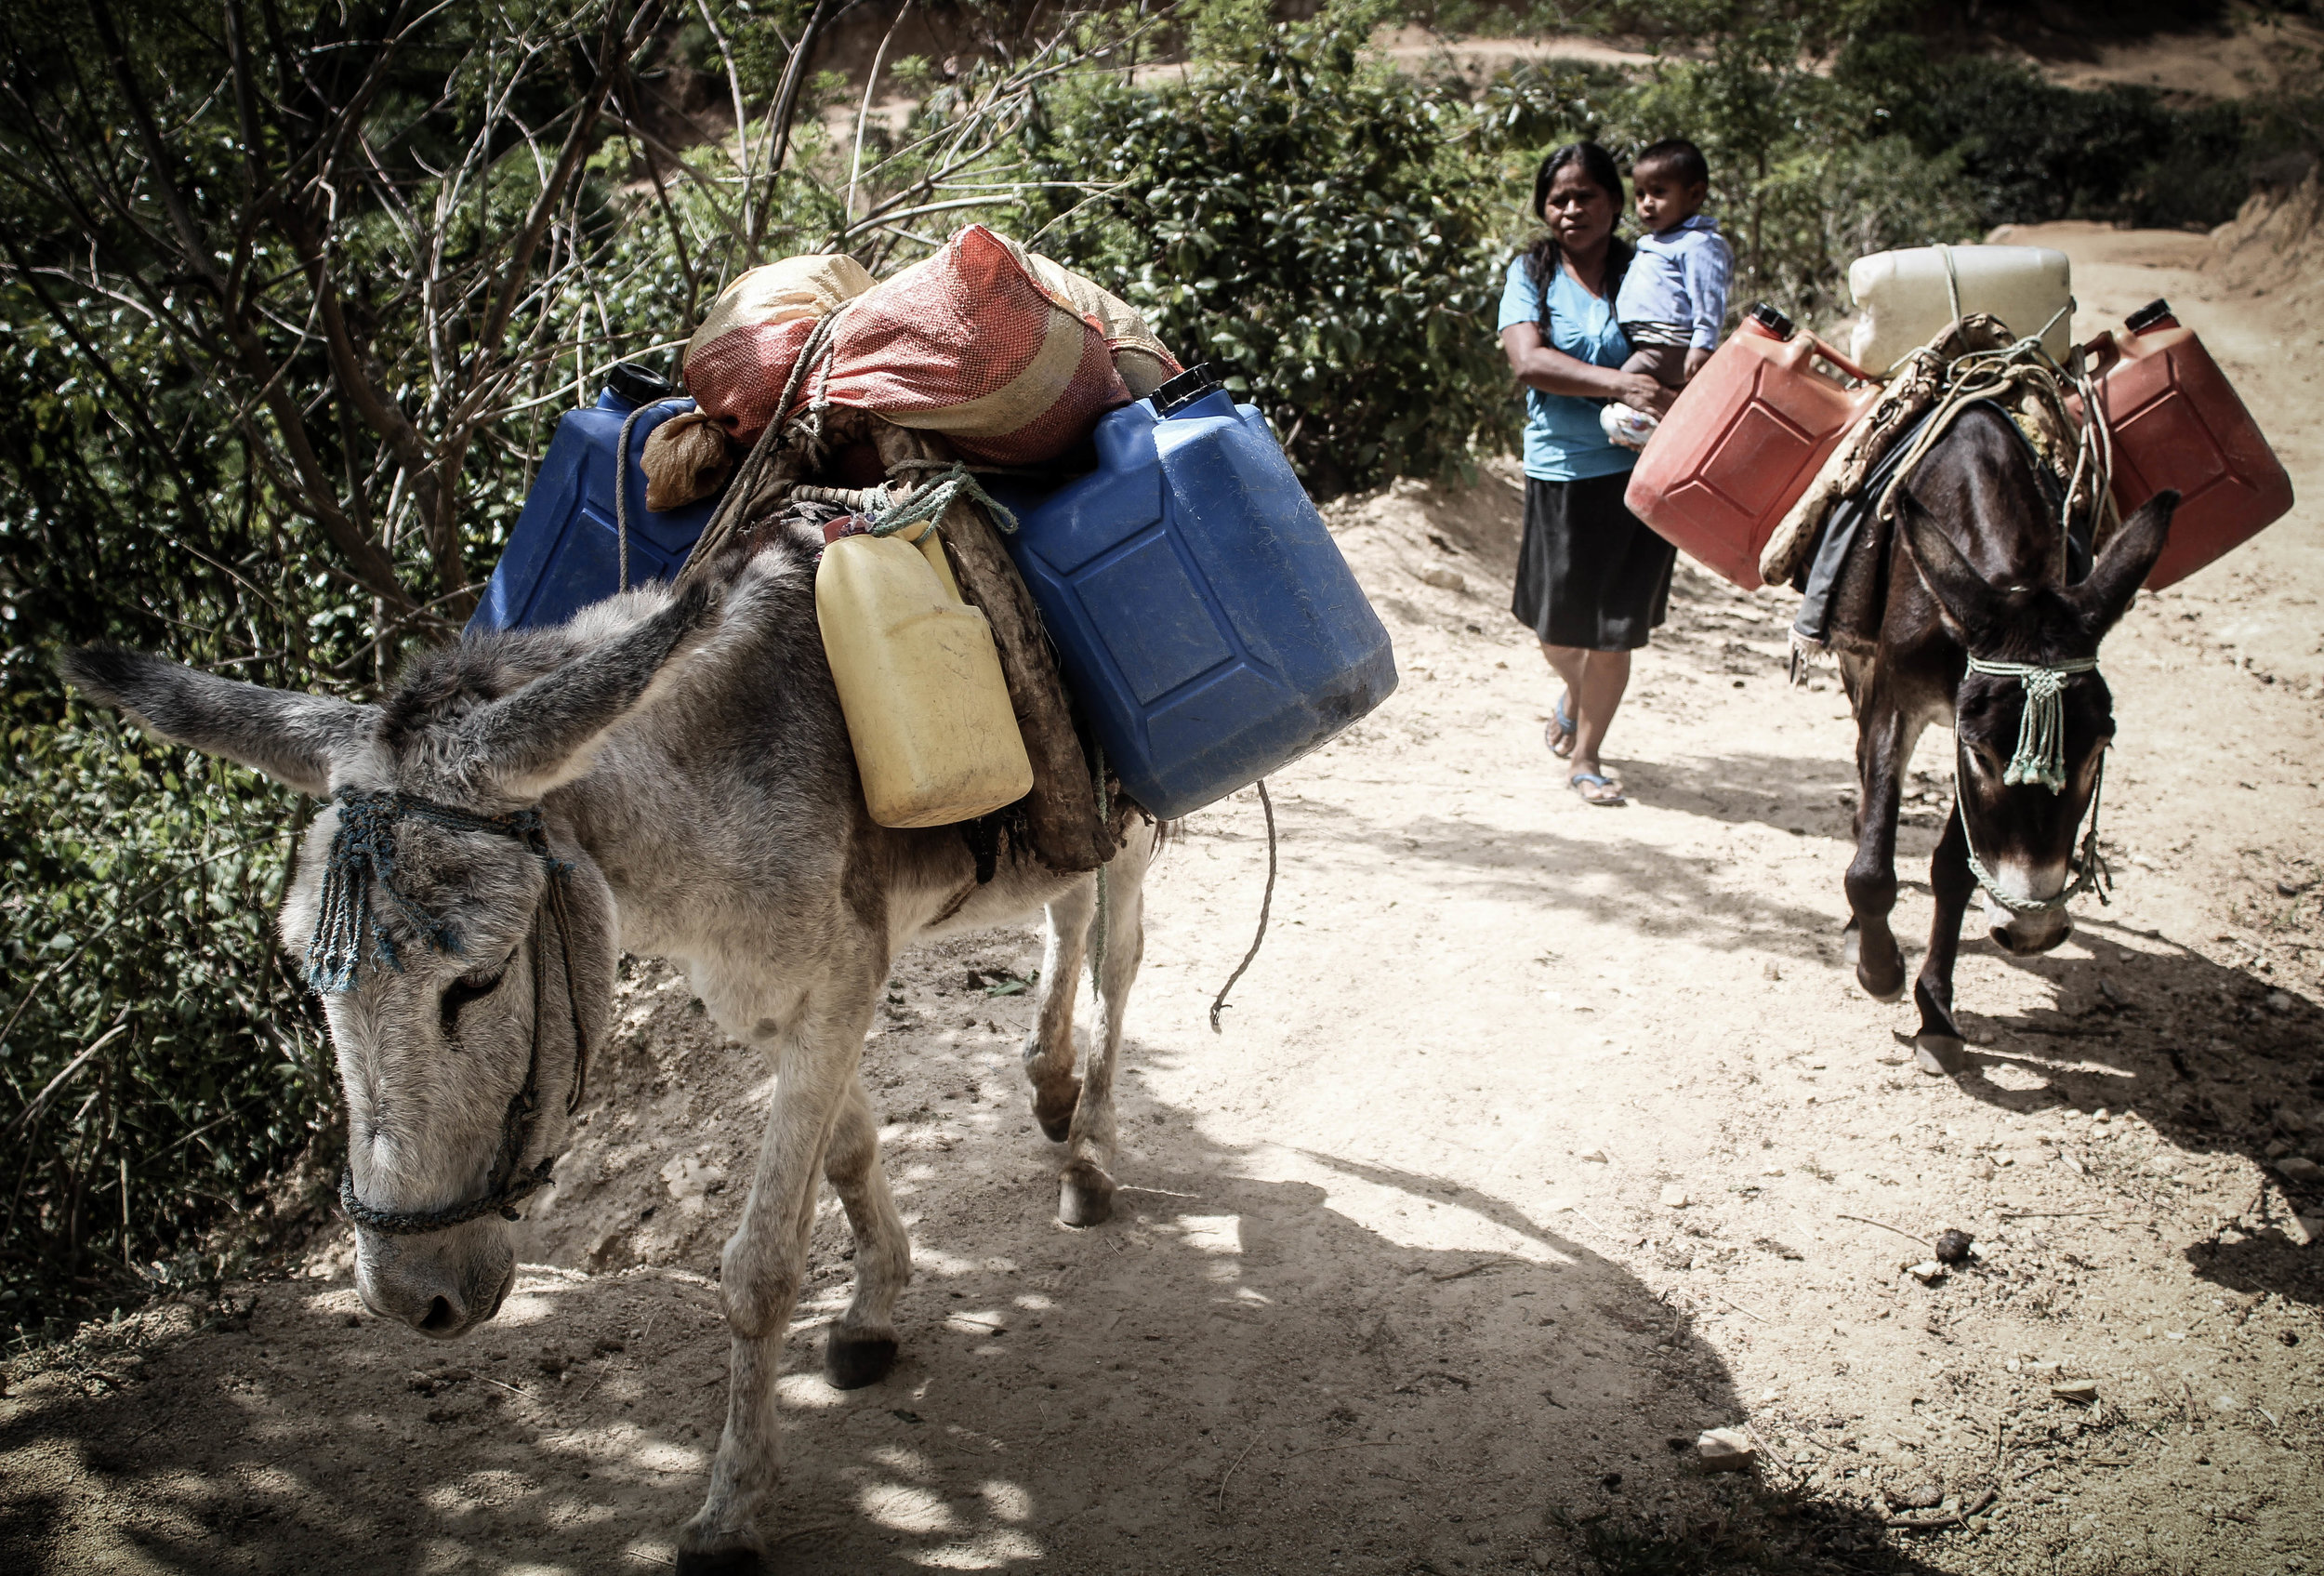 Working equines allow many poor women in the developing world to earn their own money, develop some independence, pay school fees so their children can receive an education, and much,  more..jpg